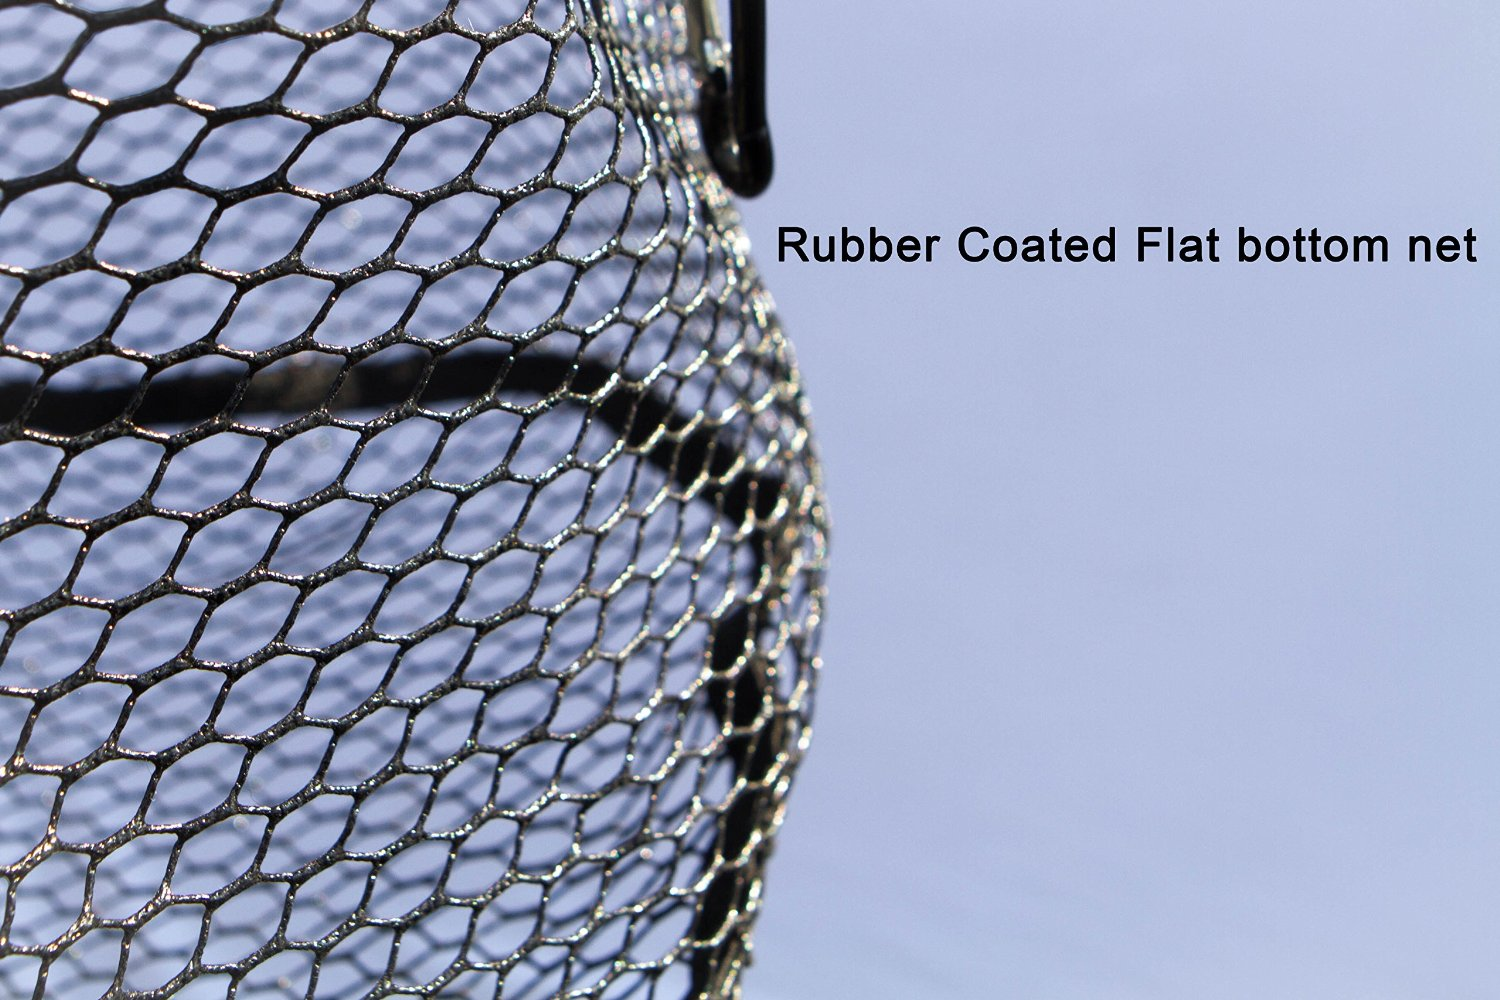 Action sports fly fishing nets fishingnew for Rubber fishing net